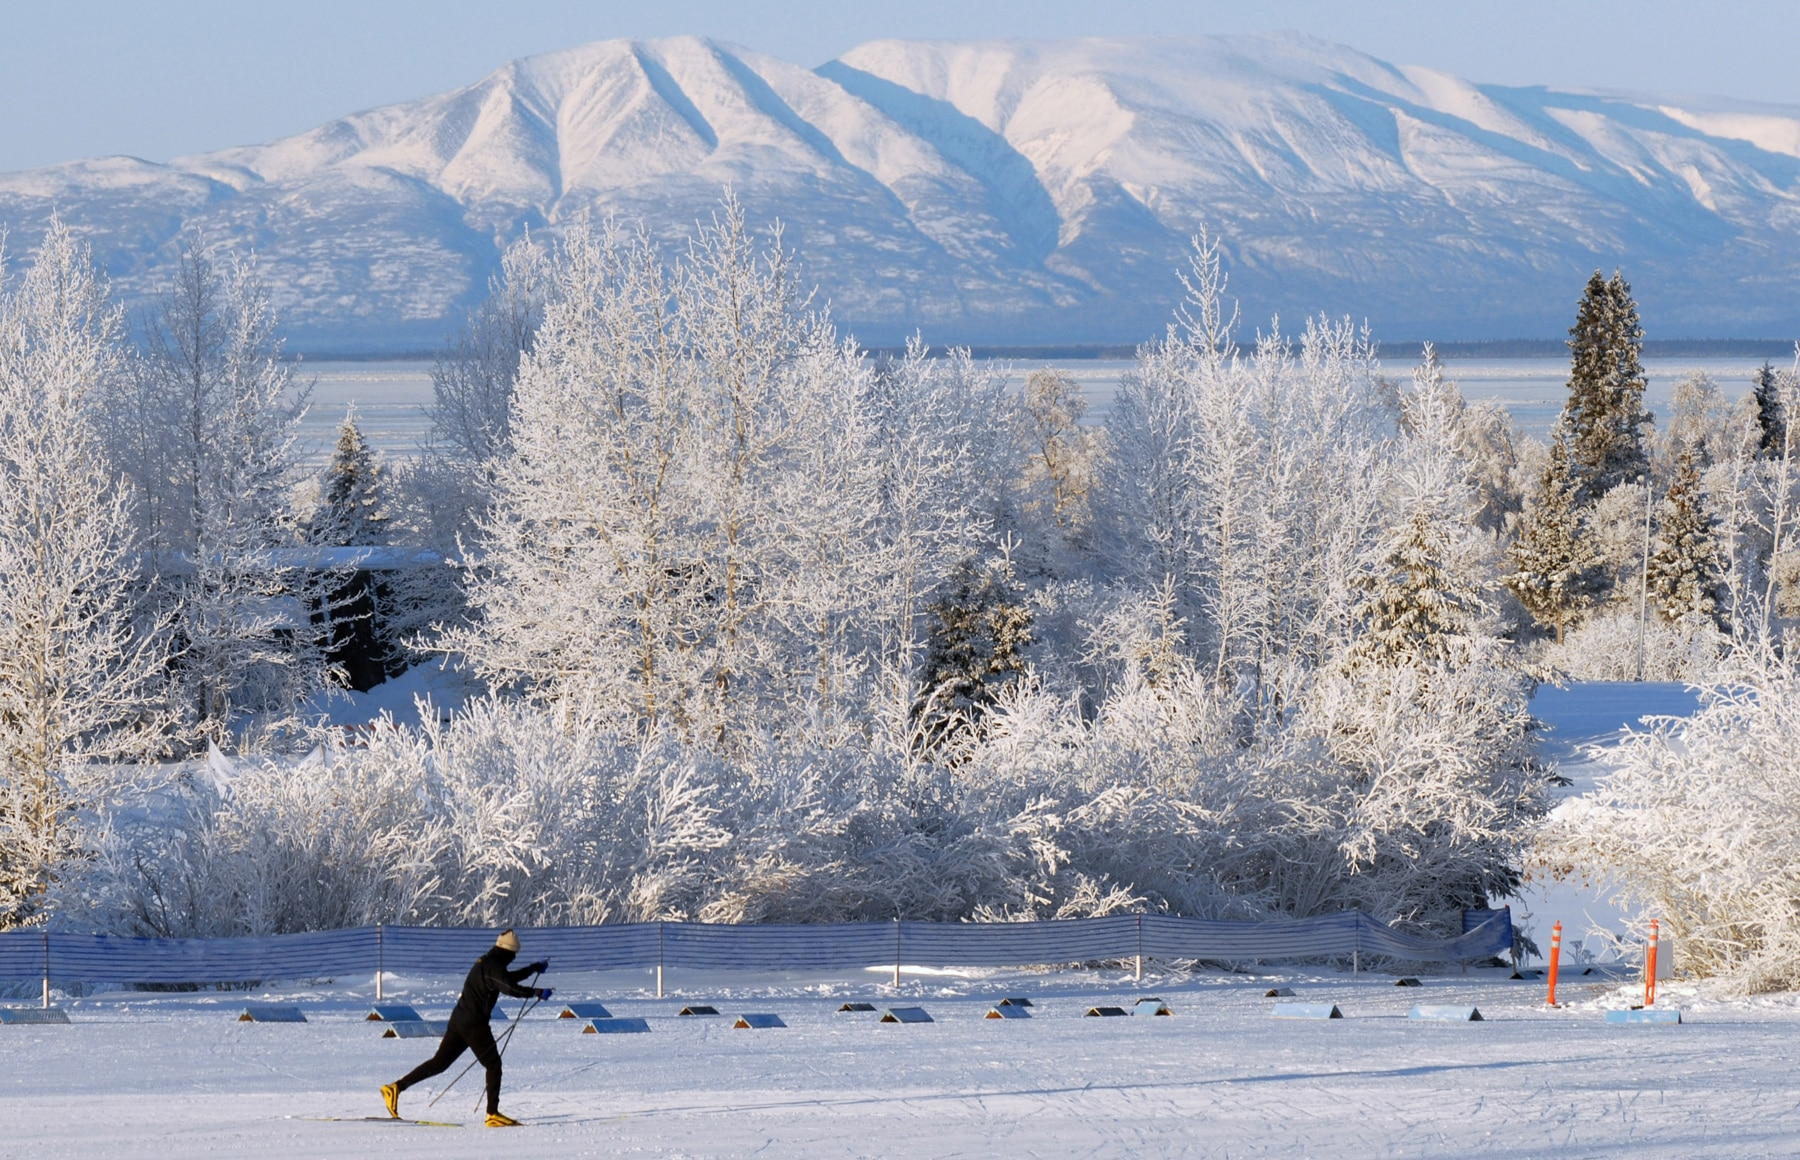 Person cross-country skiing near snow-covered trees, with snowy mountains in the background (© Bill Roth/Anchorage Daily News/MCT/Getty Images)